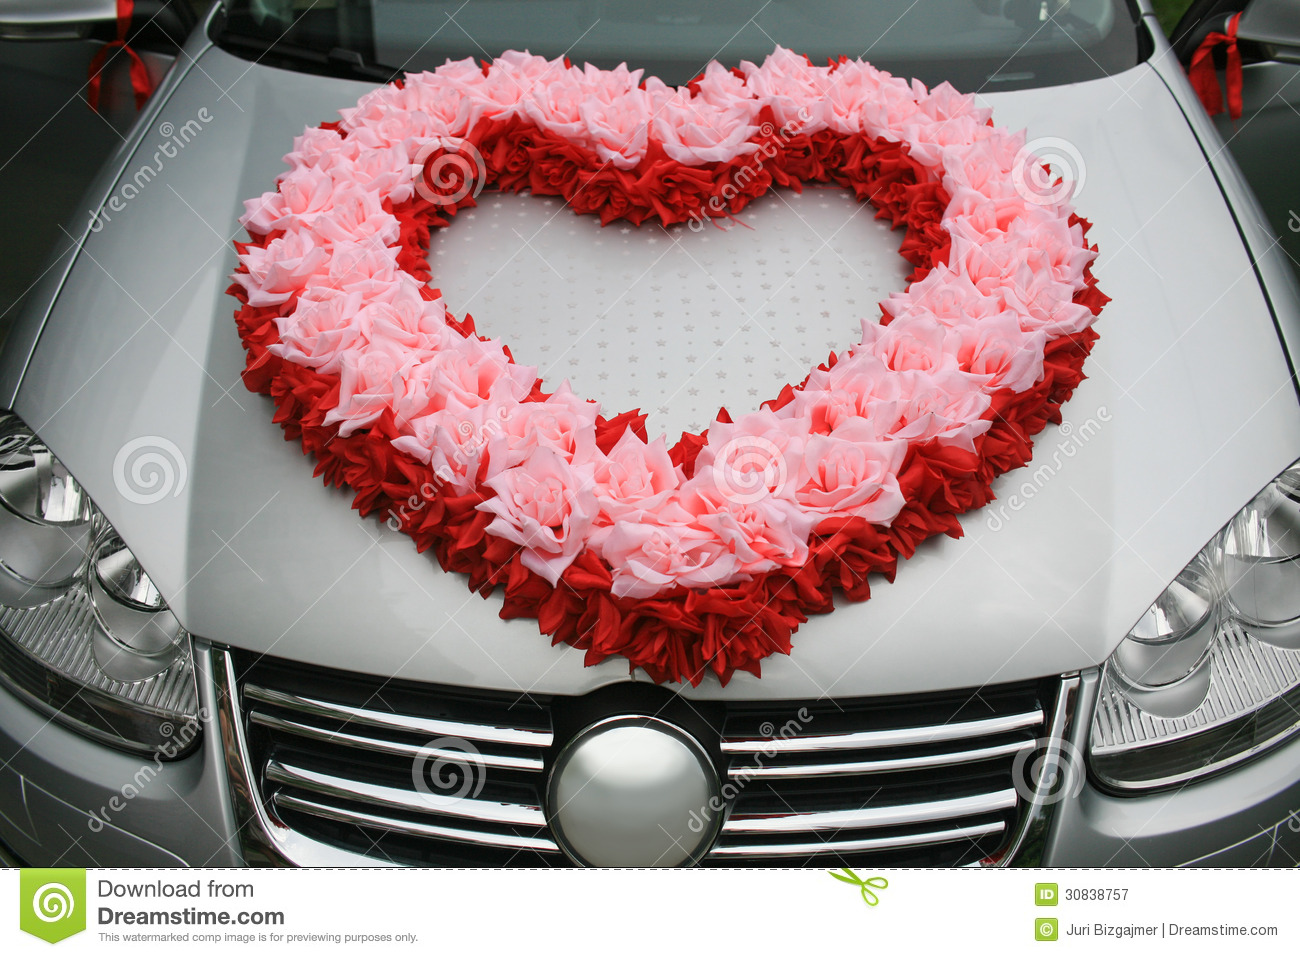 Wedding Car With Heart From Flowers Stock Image - Image of object ...